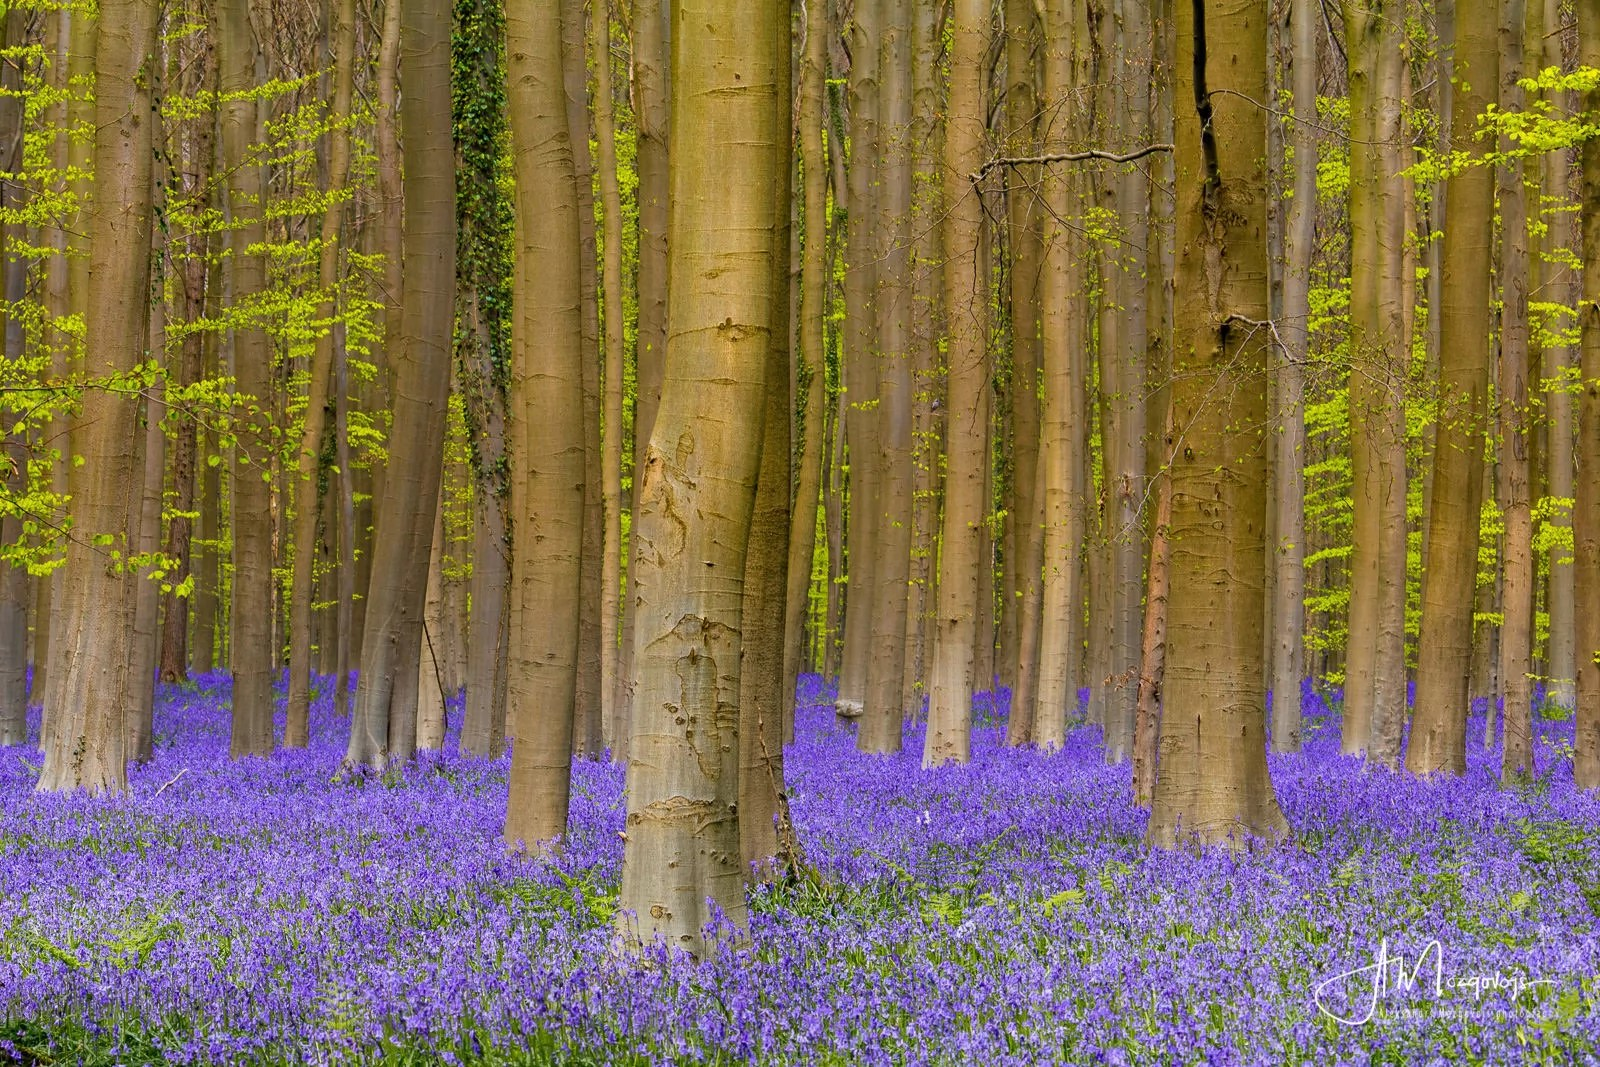 A carpet of blooming bluebells in Hallerbos